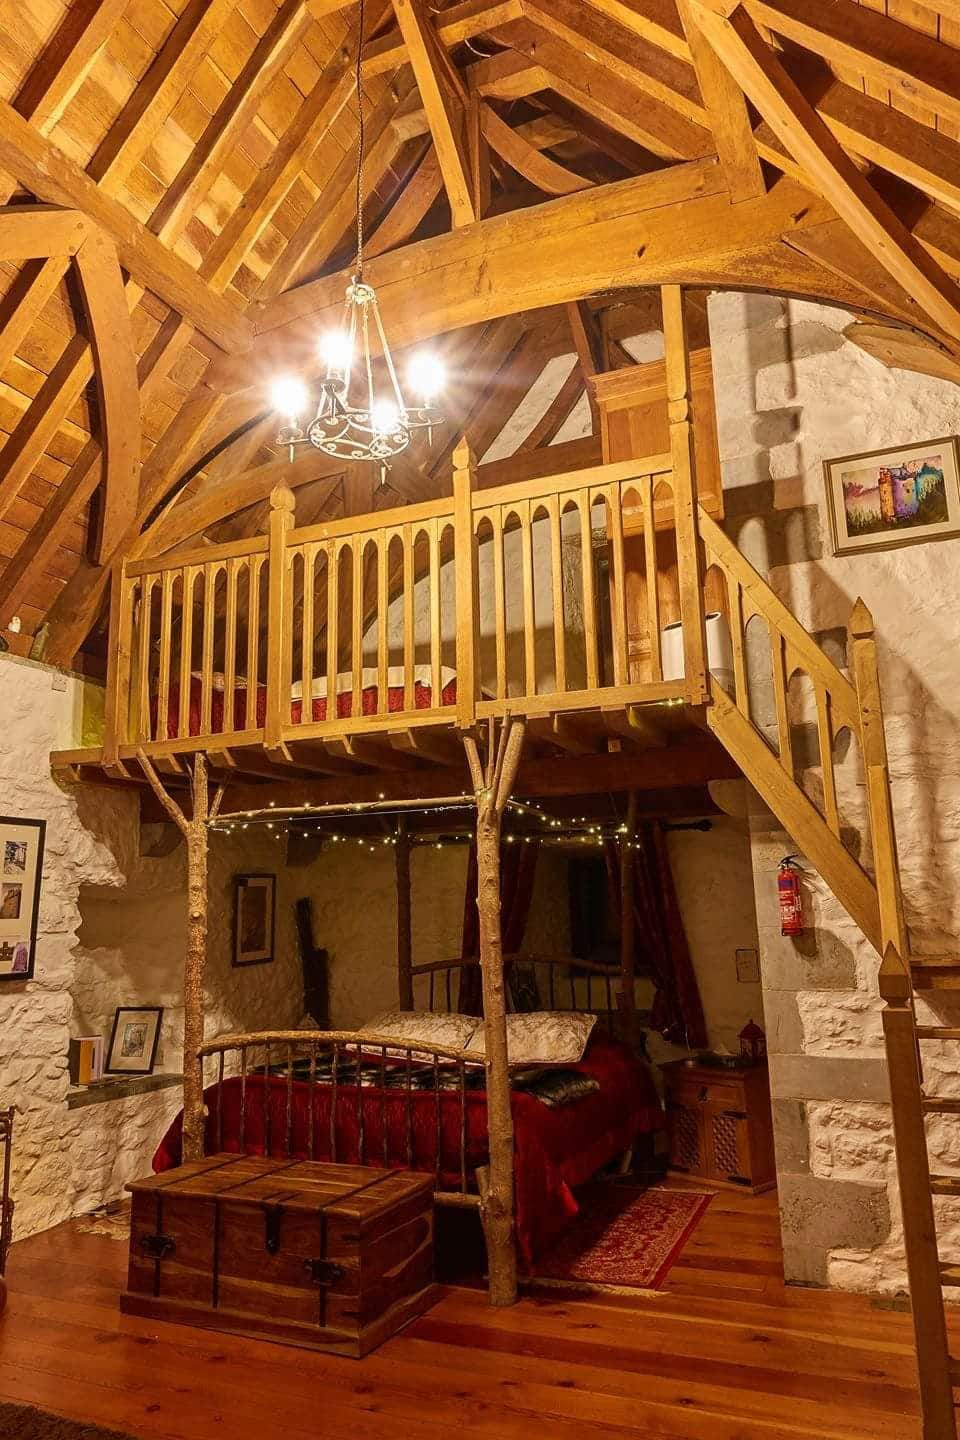 Stay in this Ireland Airbnb Castle like a true king or queen!